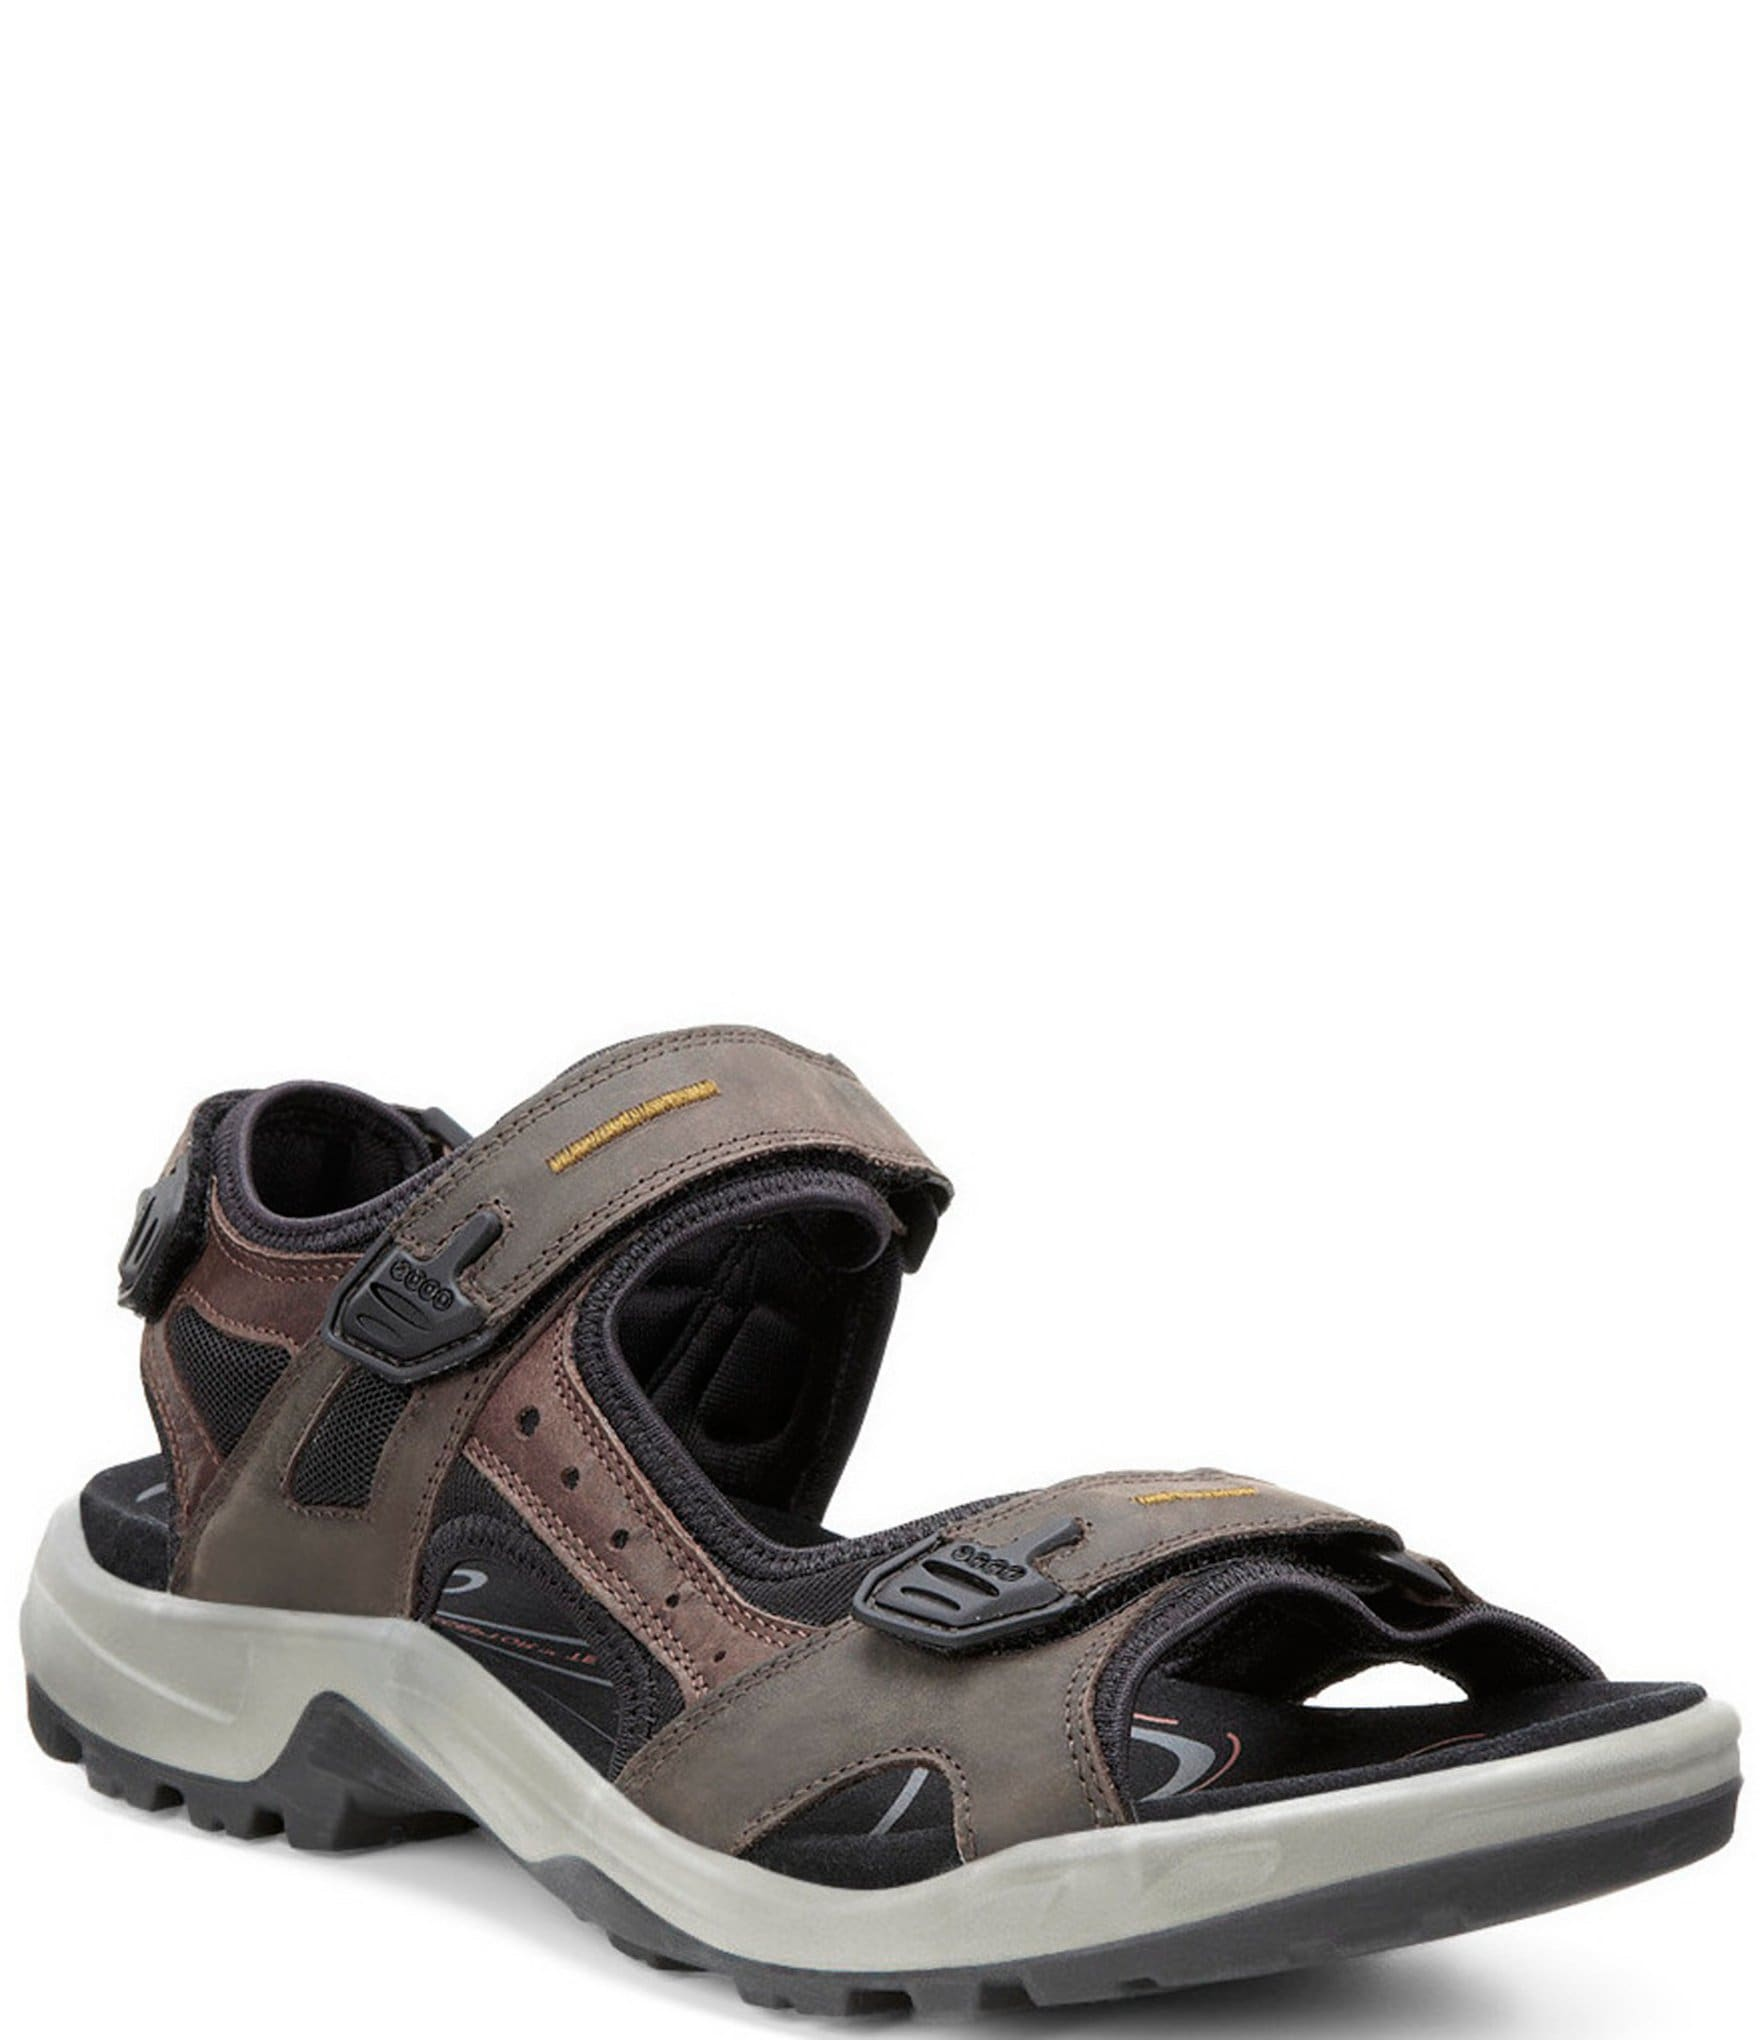 676c6b7cc ECCO Men s Yucatan Sandals